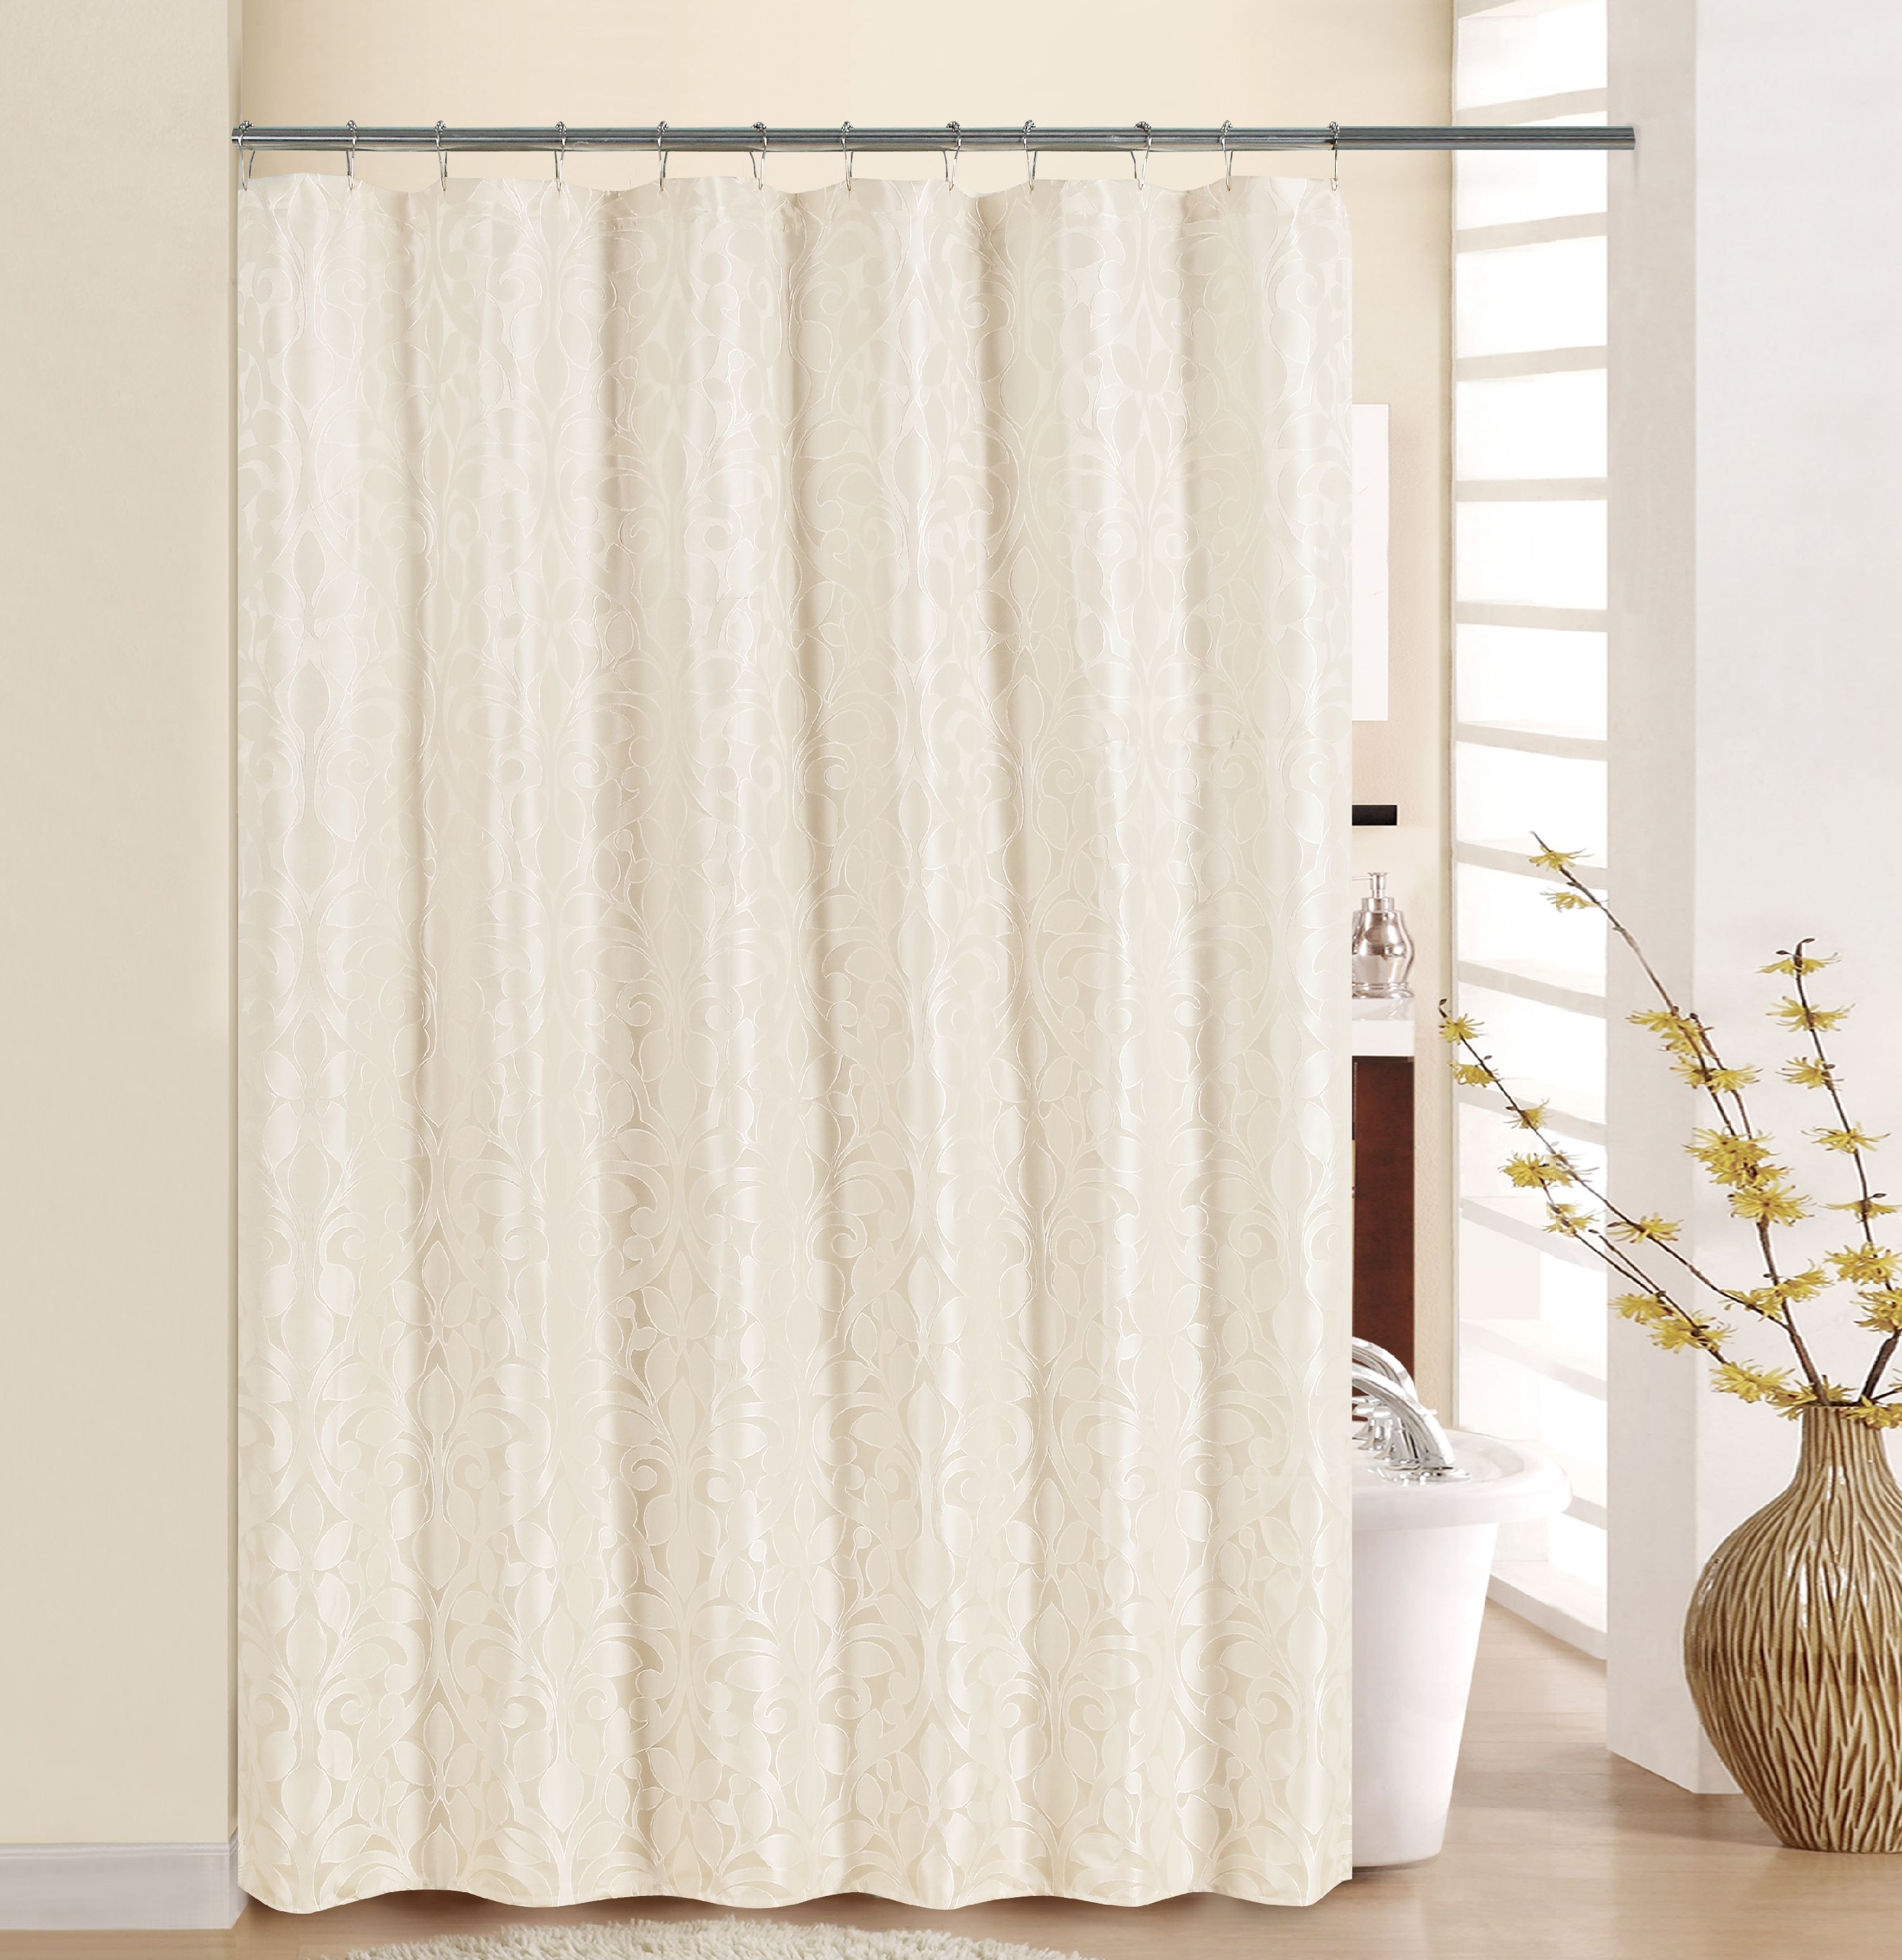 Better Homes and Gardens Damask Scroll Shower Curtain - Ivory